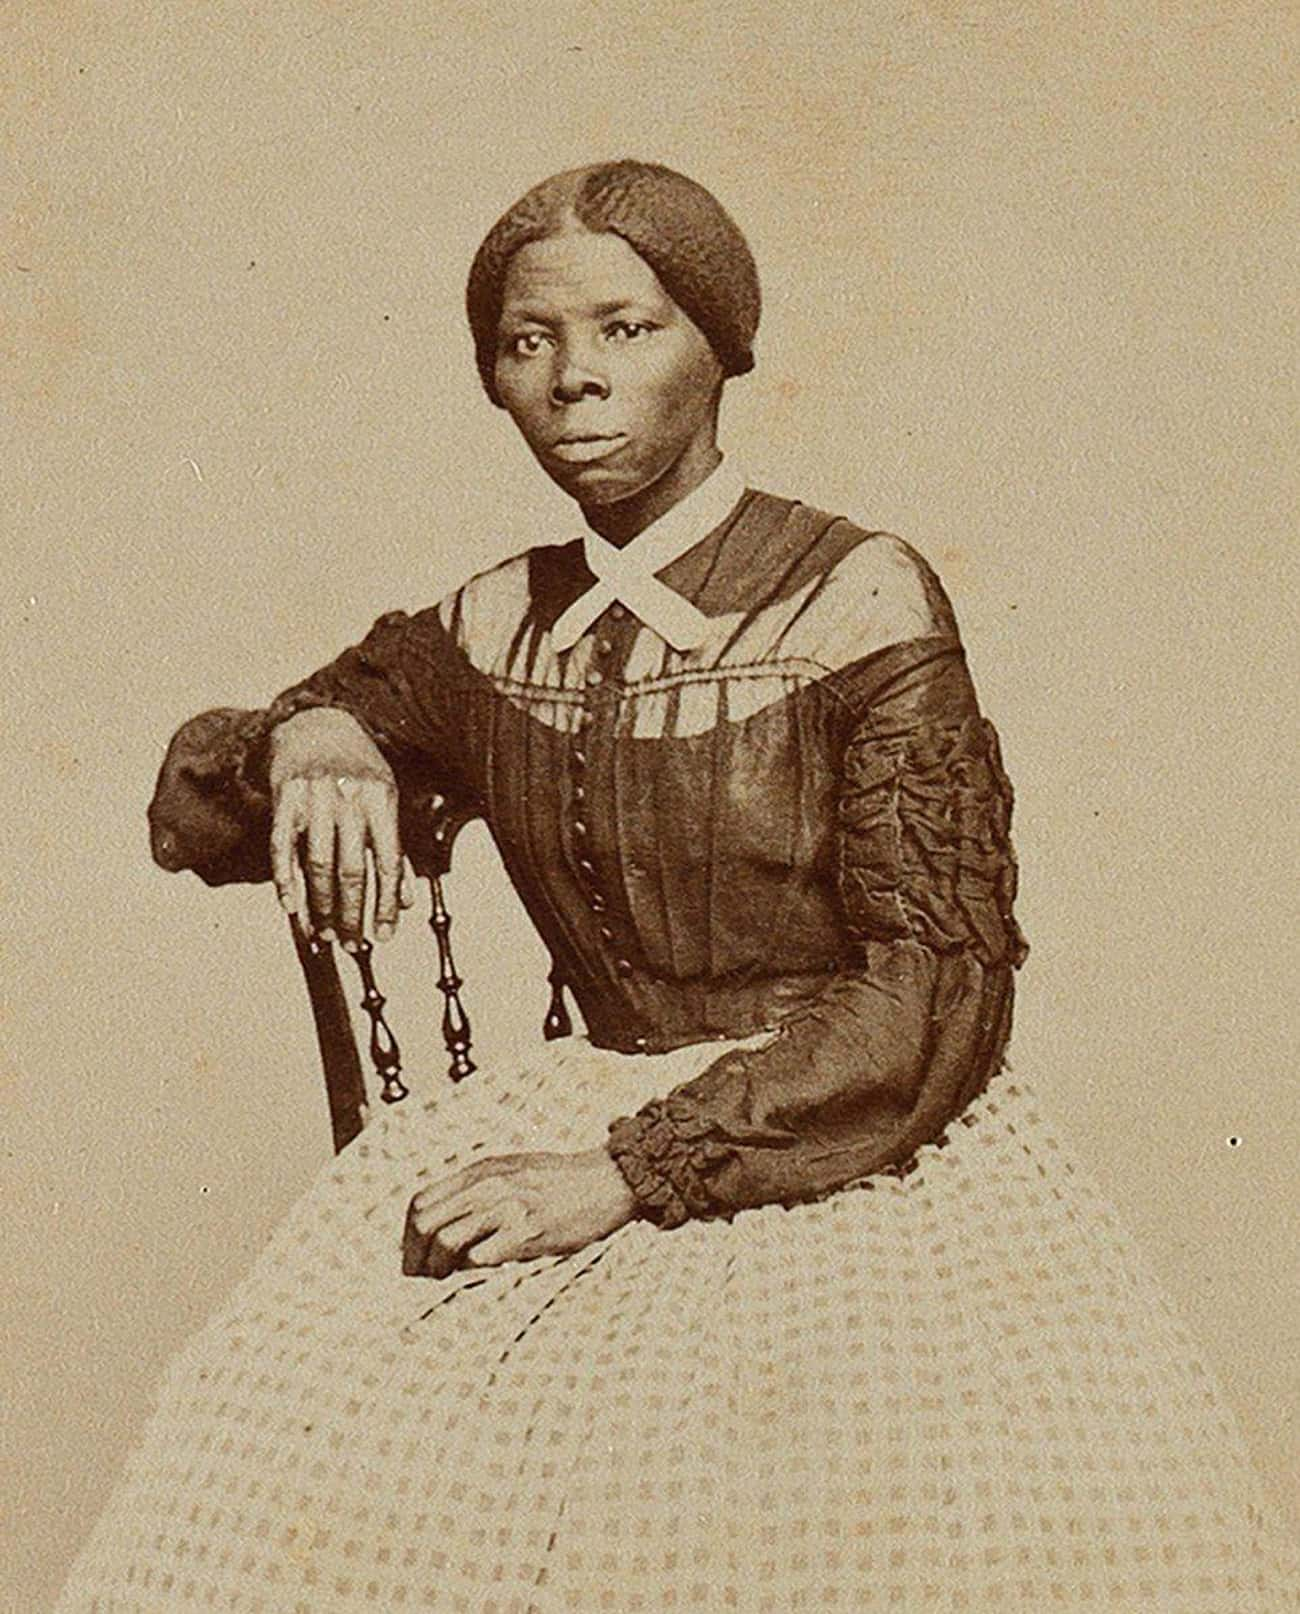 Even As A Child, She Fought Ba is listed (or ranked) 1 on the list 17 Things You Didn't Know About Harriet Tubman